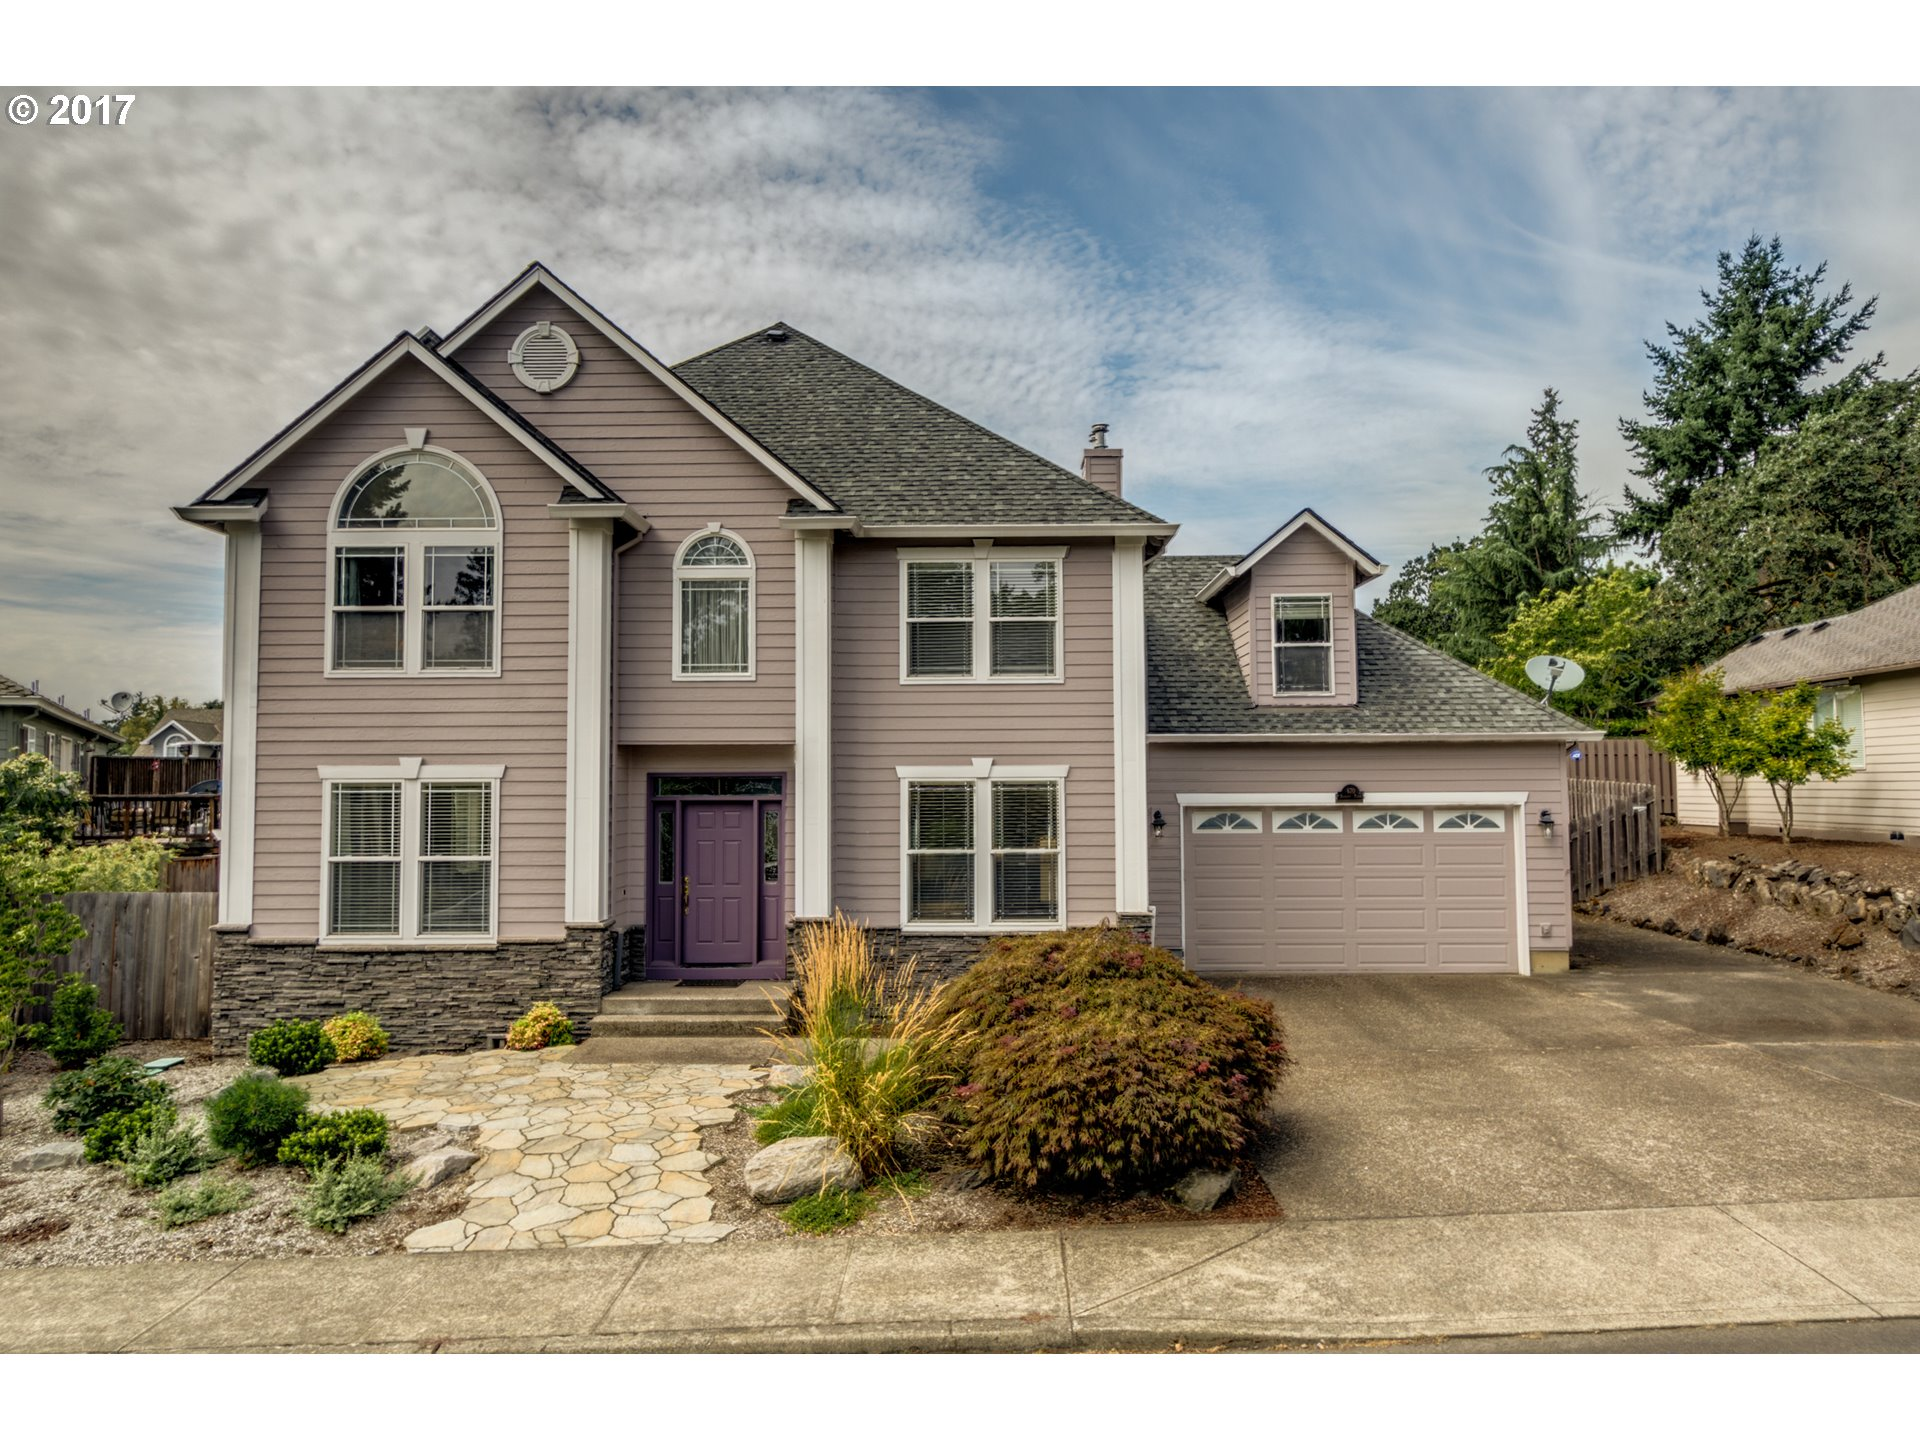 670 BARBARY PL, Gladstone, OR 97027